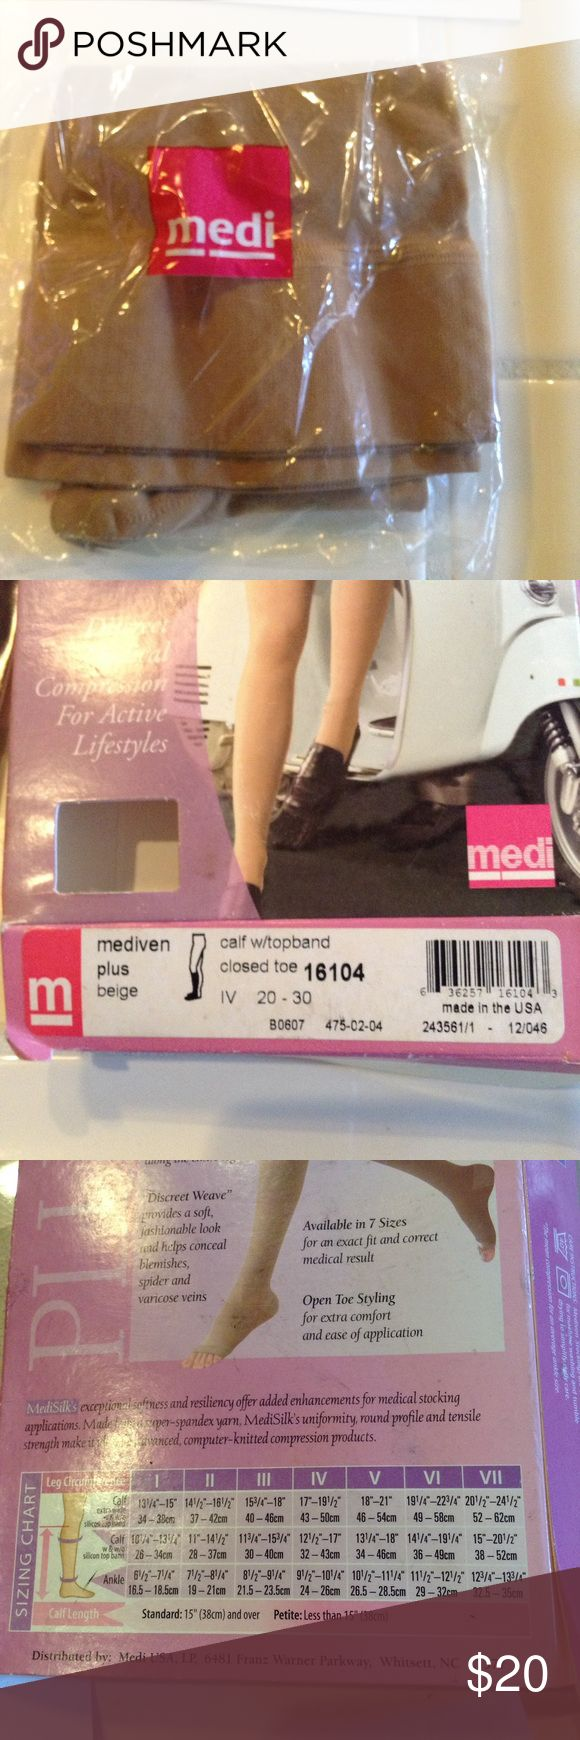 NEW Beige closed toe compression stocking. Size IV Medi enhances mobility and performance for patients with osteoarthritis, osteoporosis, and other joint issues. Medium pressure for varicose veins, edema, swelling. Made from a super-spandex yarn. Beige, closed toe compression stocking. size IV. See measurements in photos Medi Intimates & Sleepwear Shapewear